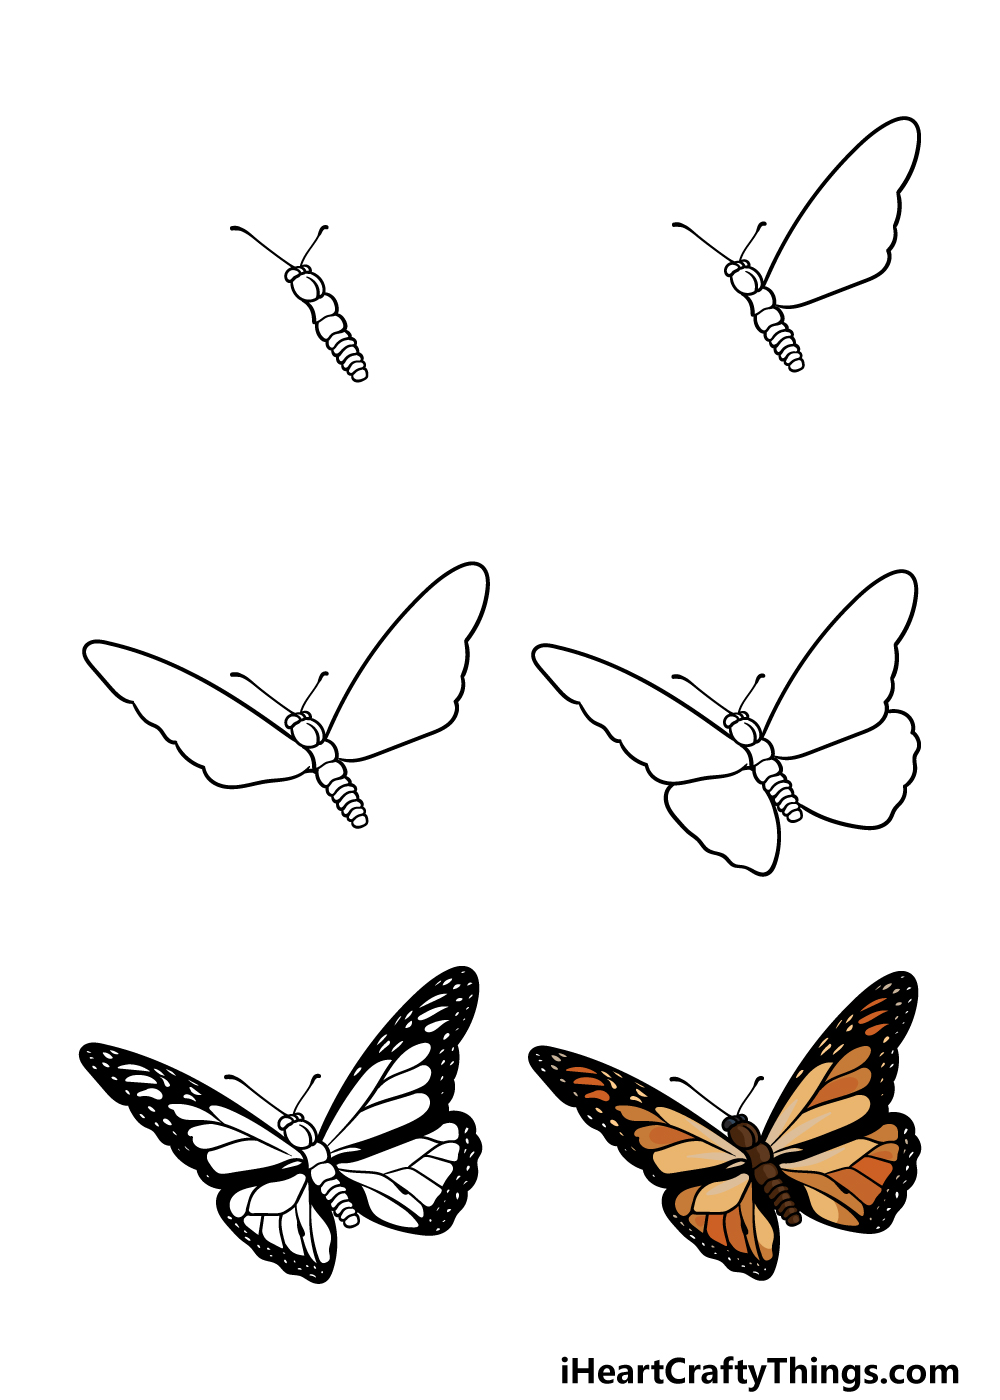 How To Draw A Monarch Butterfly in 6 steps